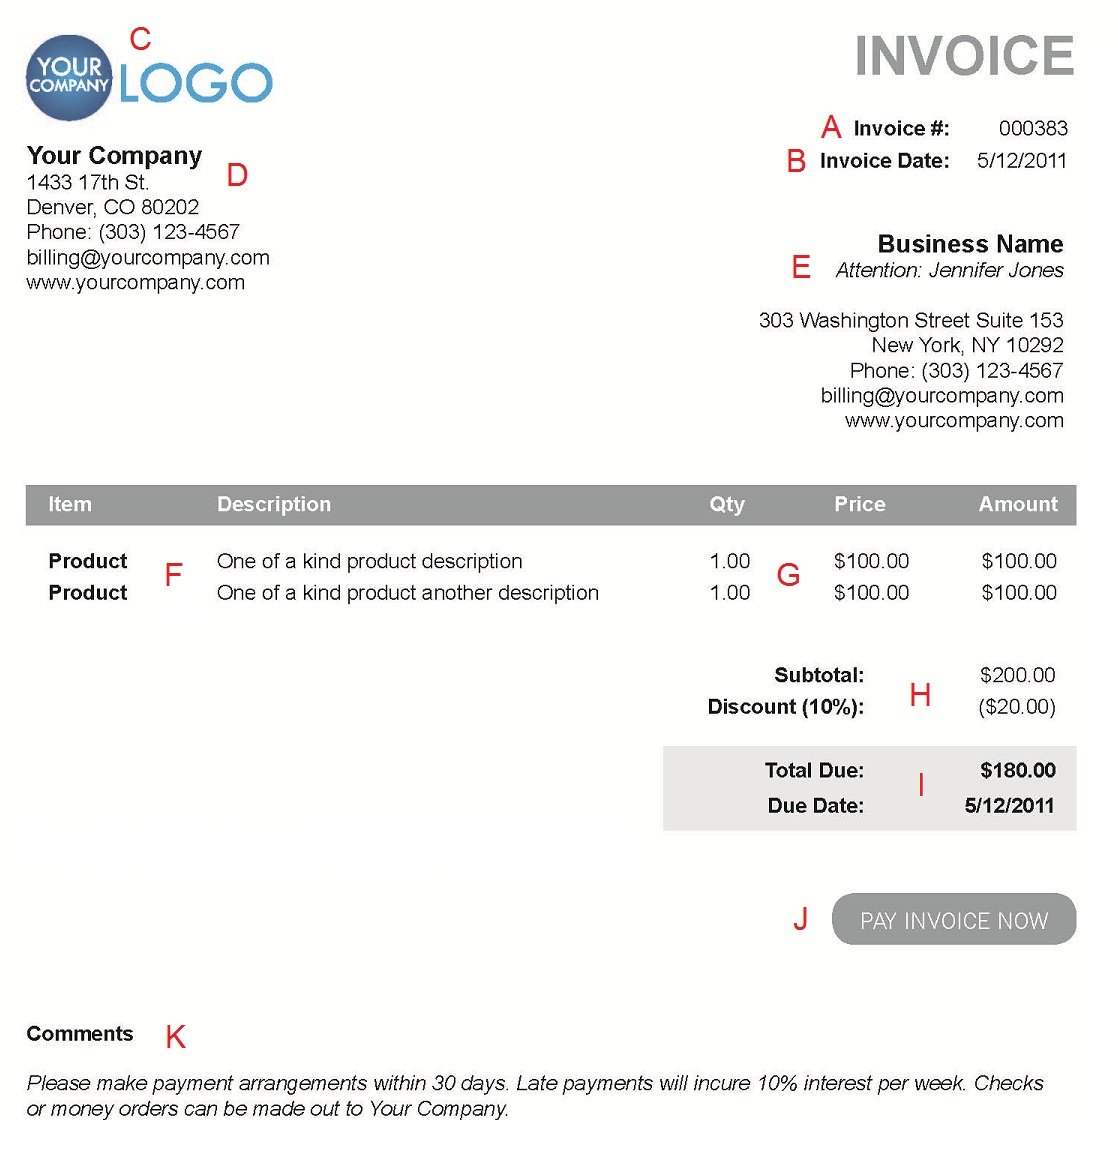 Ultrablogus  Sweet The  Different Sections Of An Electronic Payment Invoice With Marvelous A  With Beauteous Bill Payment Receipt Also Legal Receipt Form In Addition Consumer Rights Faulty Goods No Receipt And Tax Receipt Letter As Well As Costco Return Policy With Receipt Additionally Company Receipt Sample From Paysimplecom With Ultrablogus  Marvelous The  Different Sections Of An Electronic Payment Invoice With Beauteous A  And Sweet Bill Payment Receipt Also Legal Receipt Form In Addition Consumer Rights Faulty Goods No Receipt From Paysimplecom